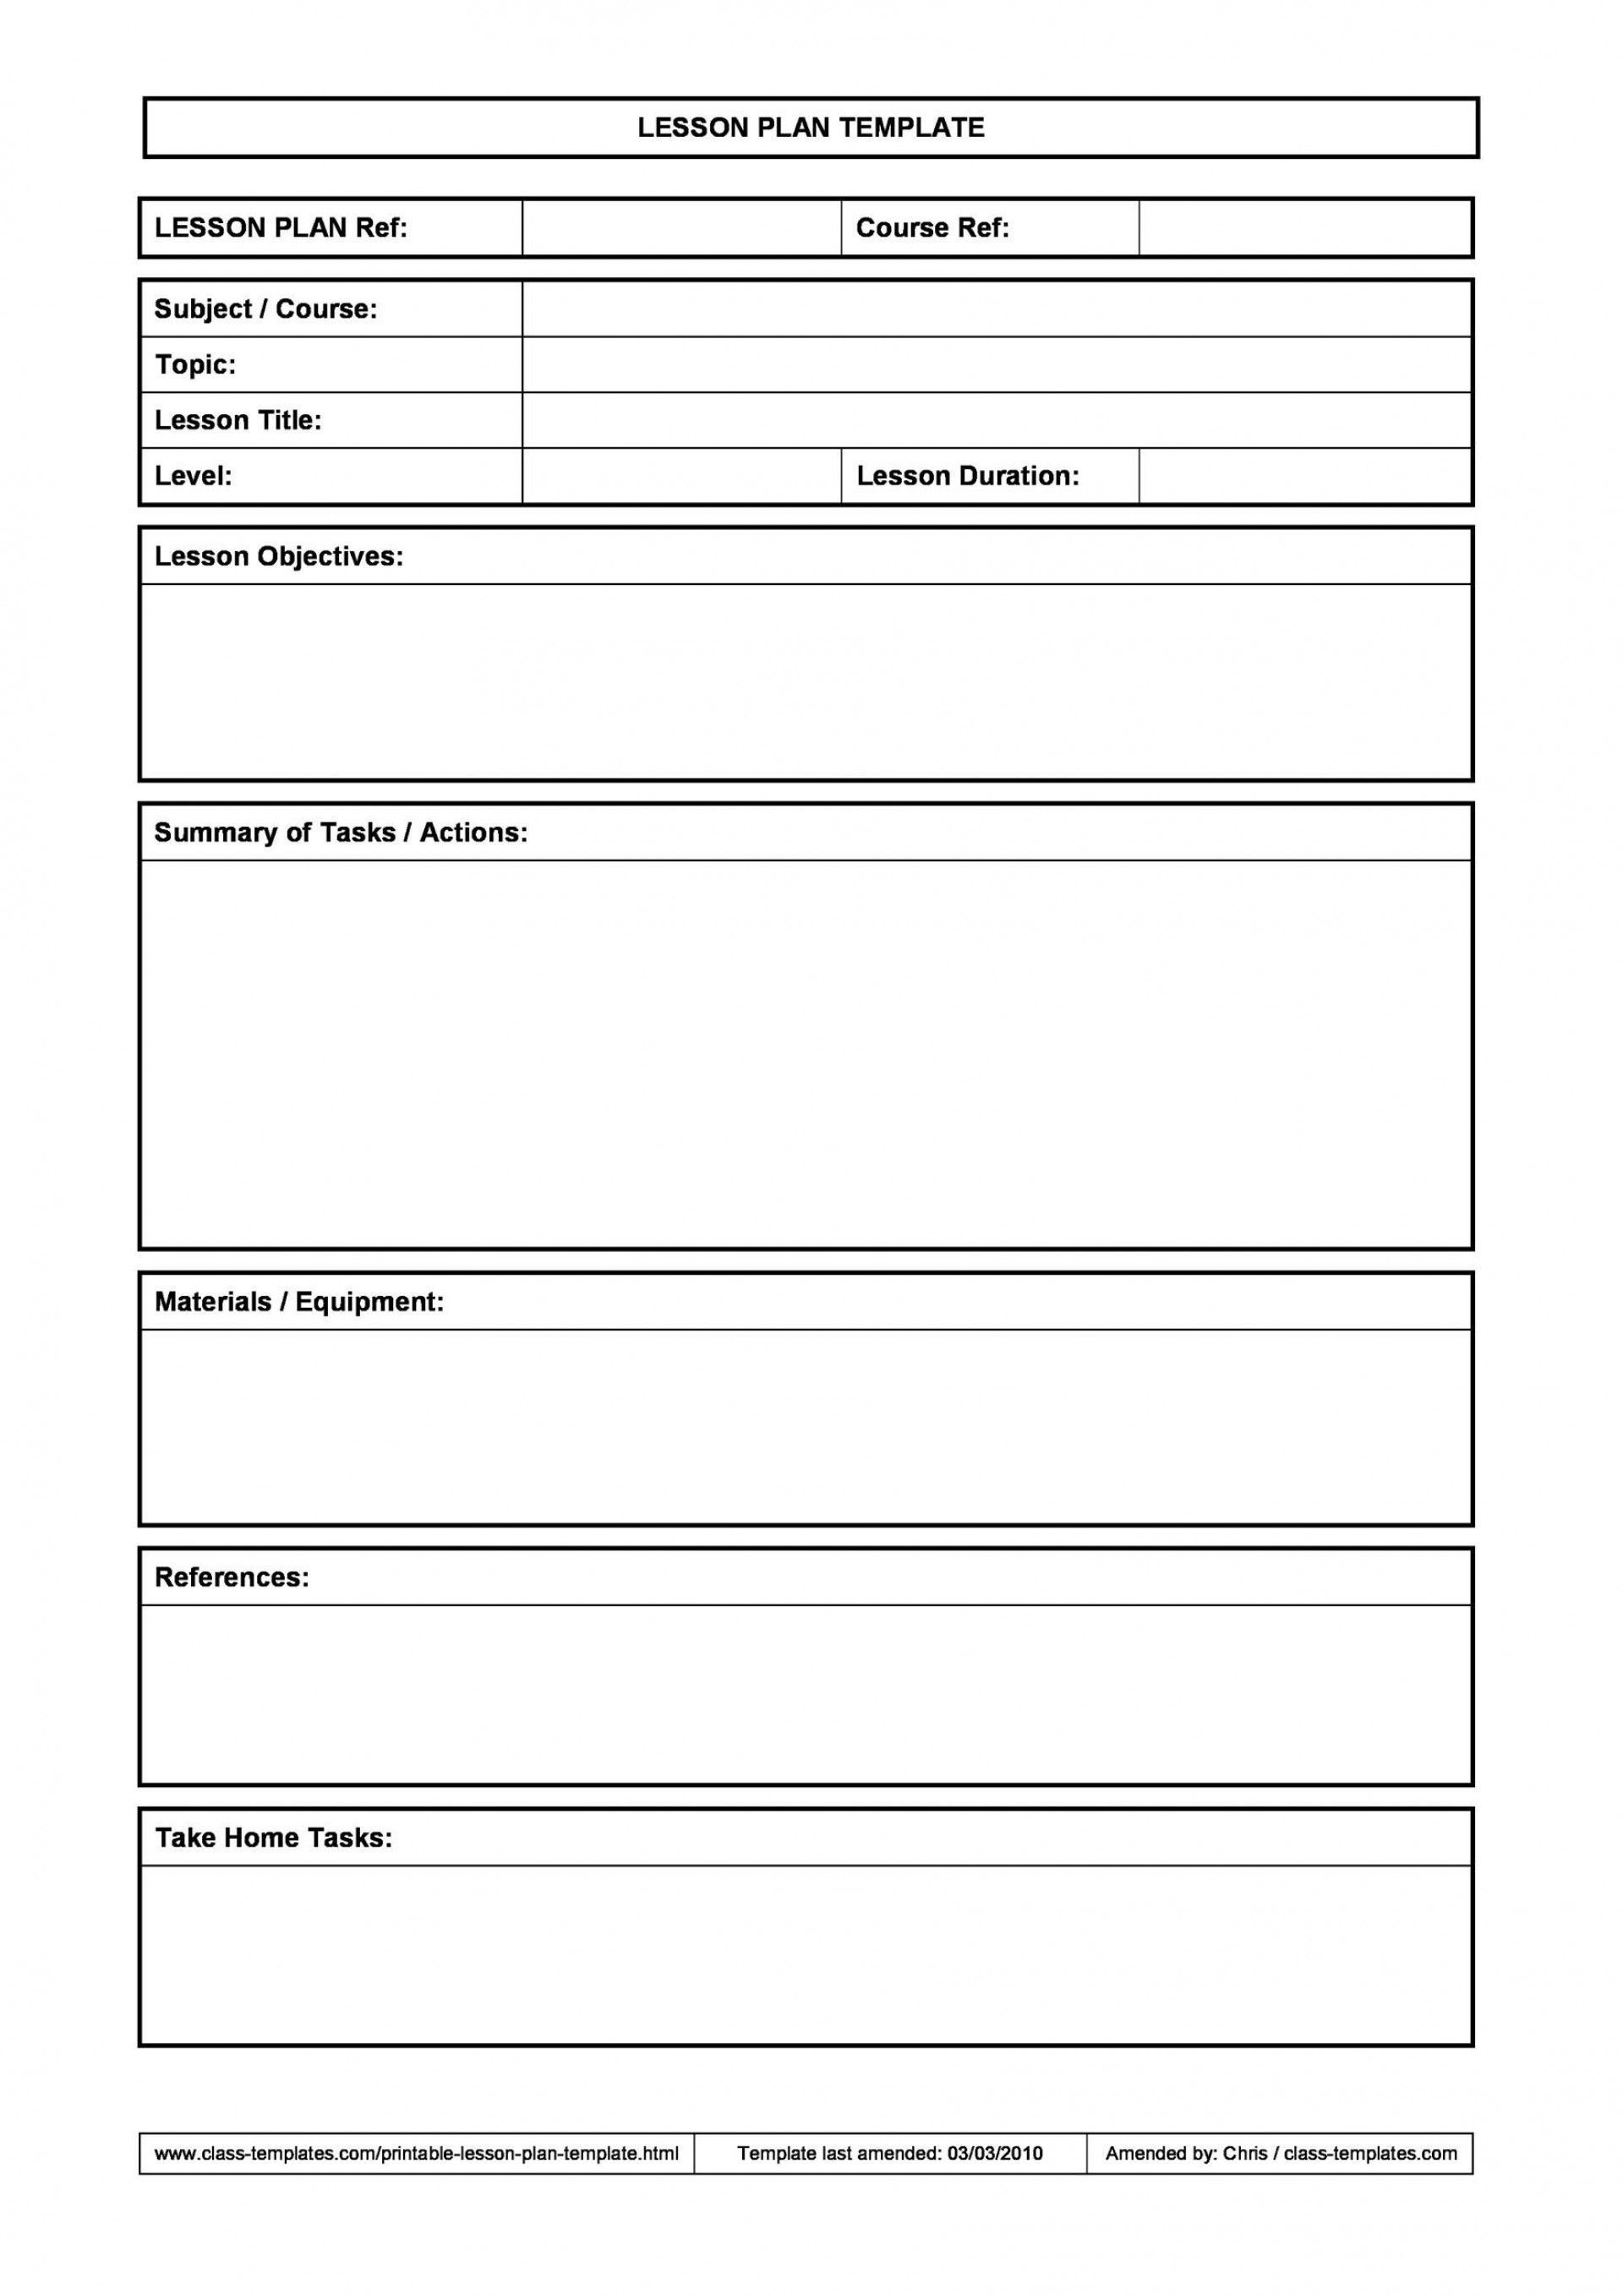 009 Breathtaking Editable Lesson Plan Template Middle School High Def 1920